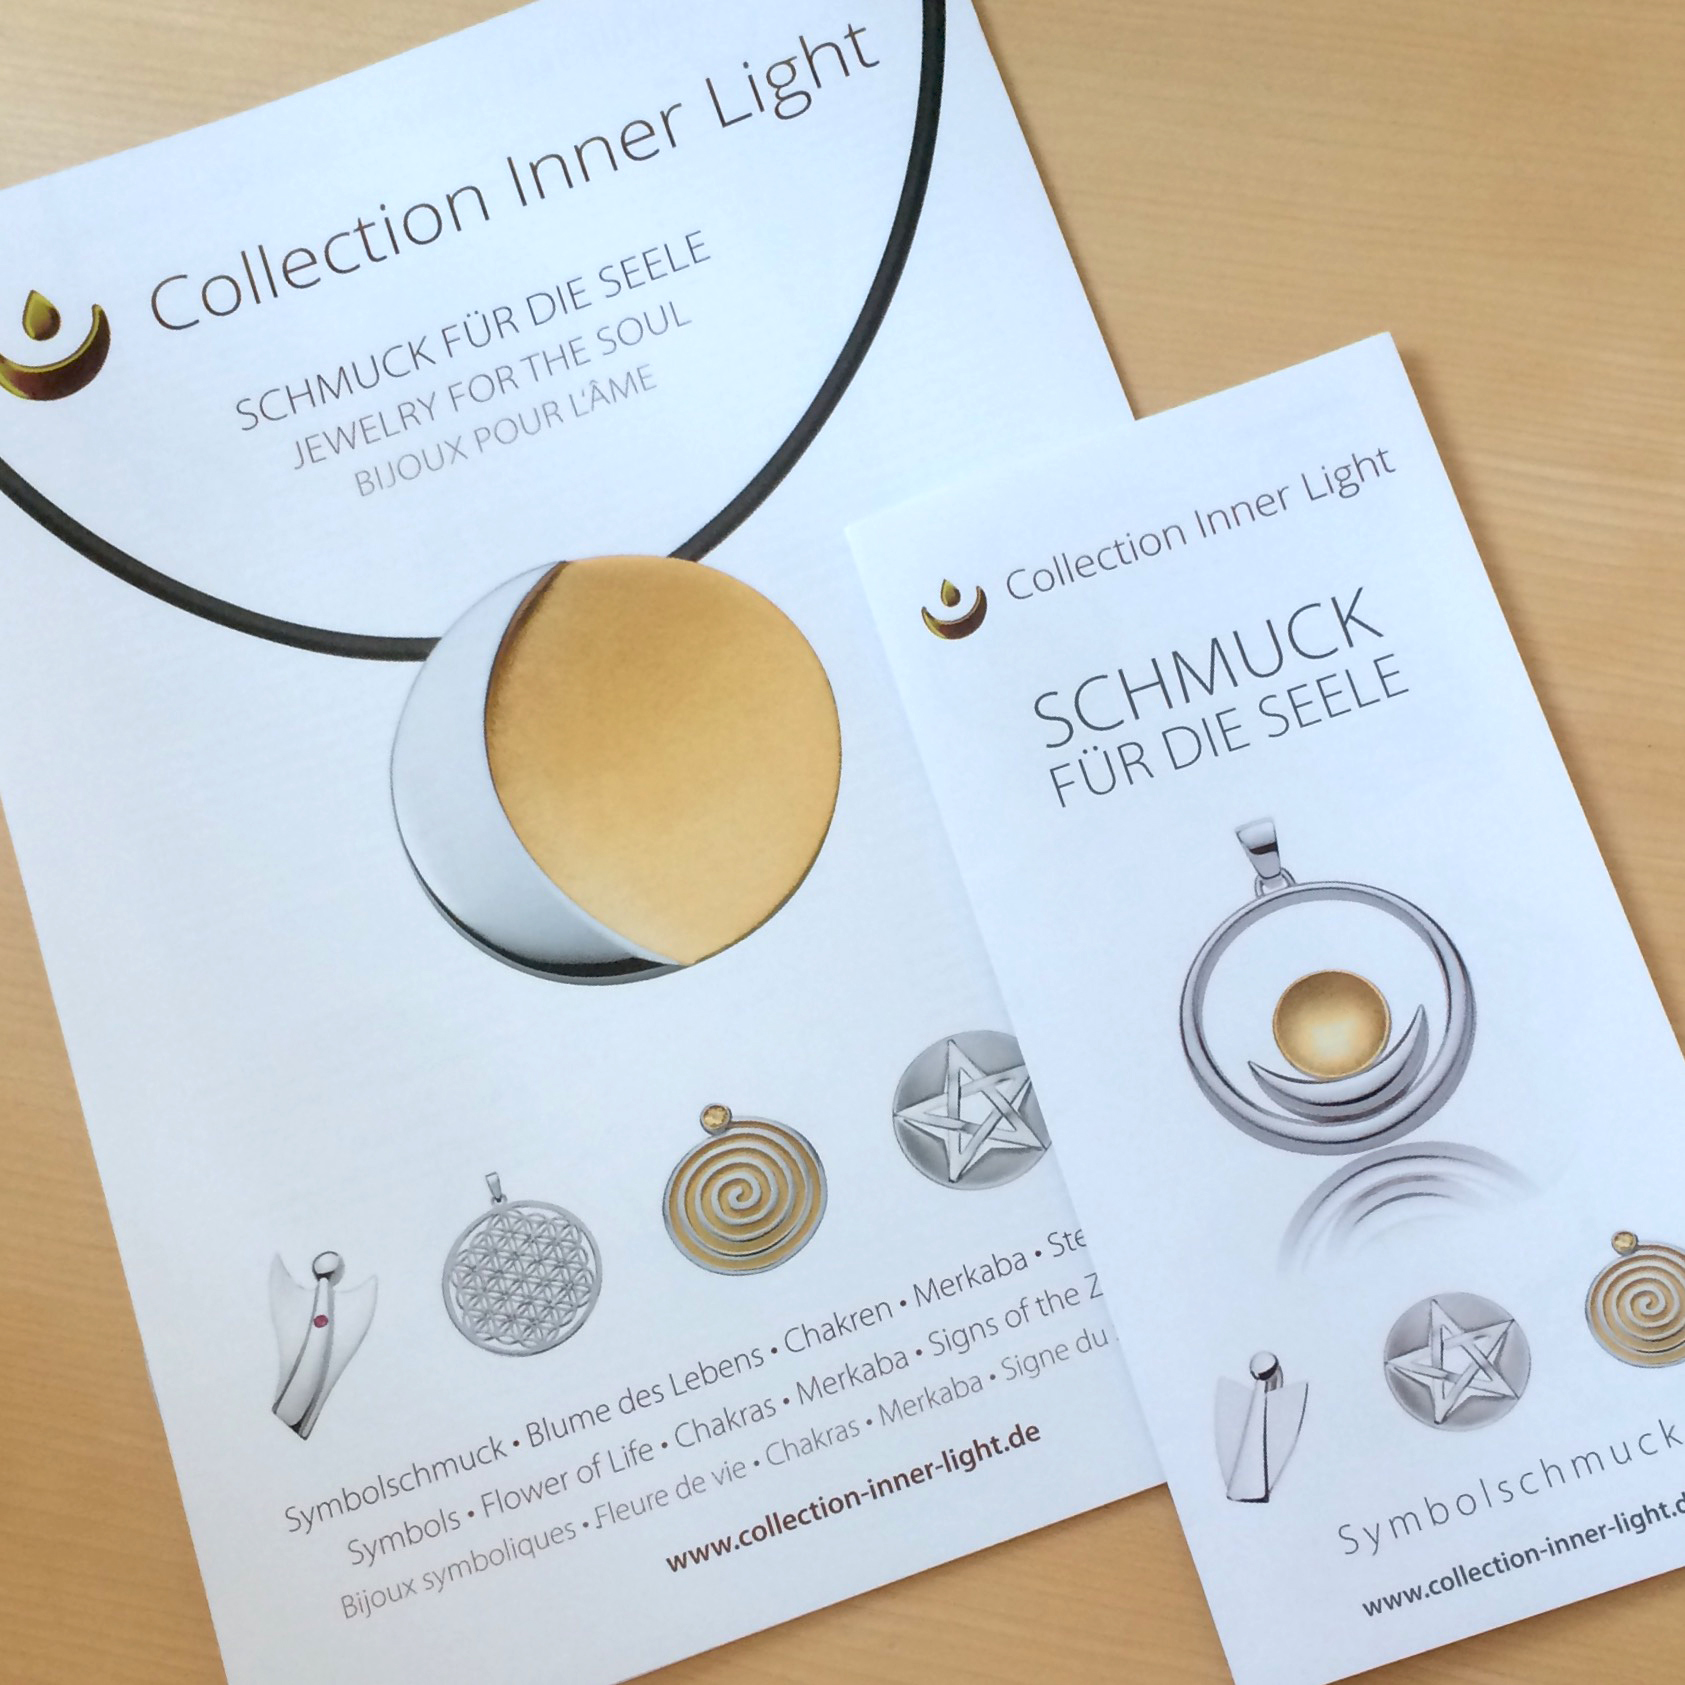 collection inner light katalog flyer werbung anzeige fontfront rossdorf 4